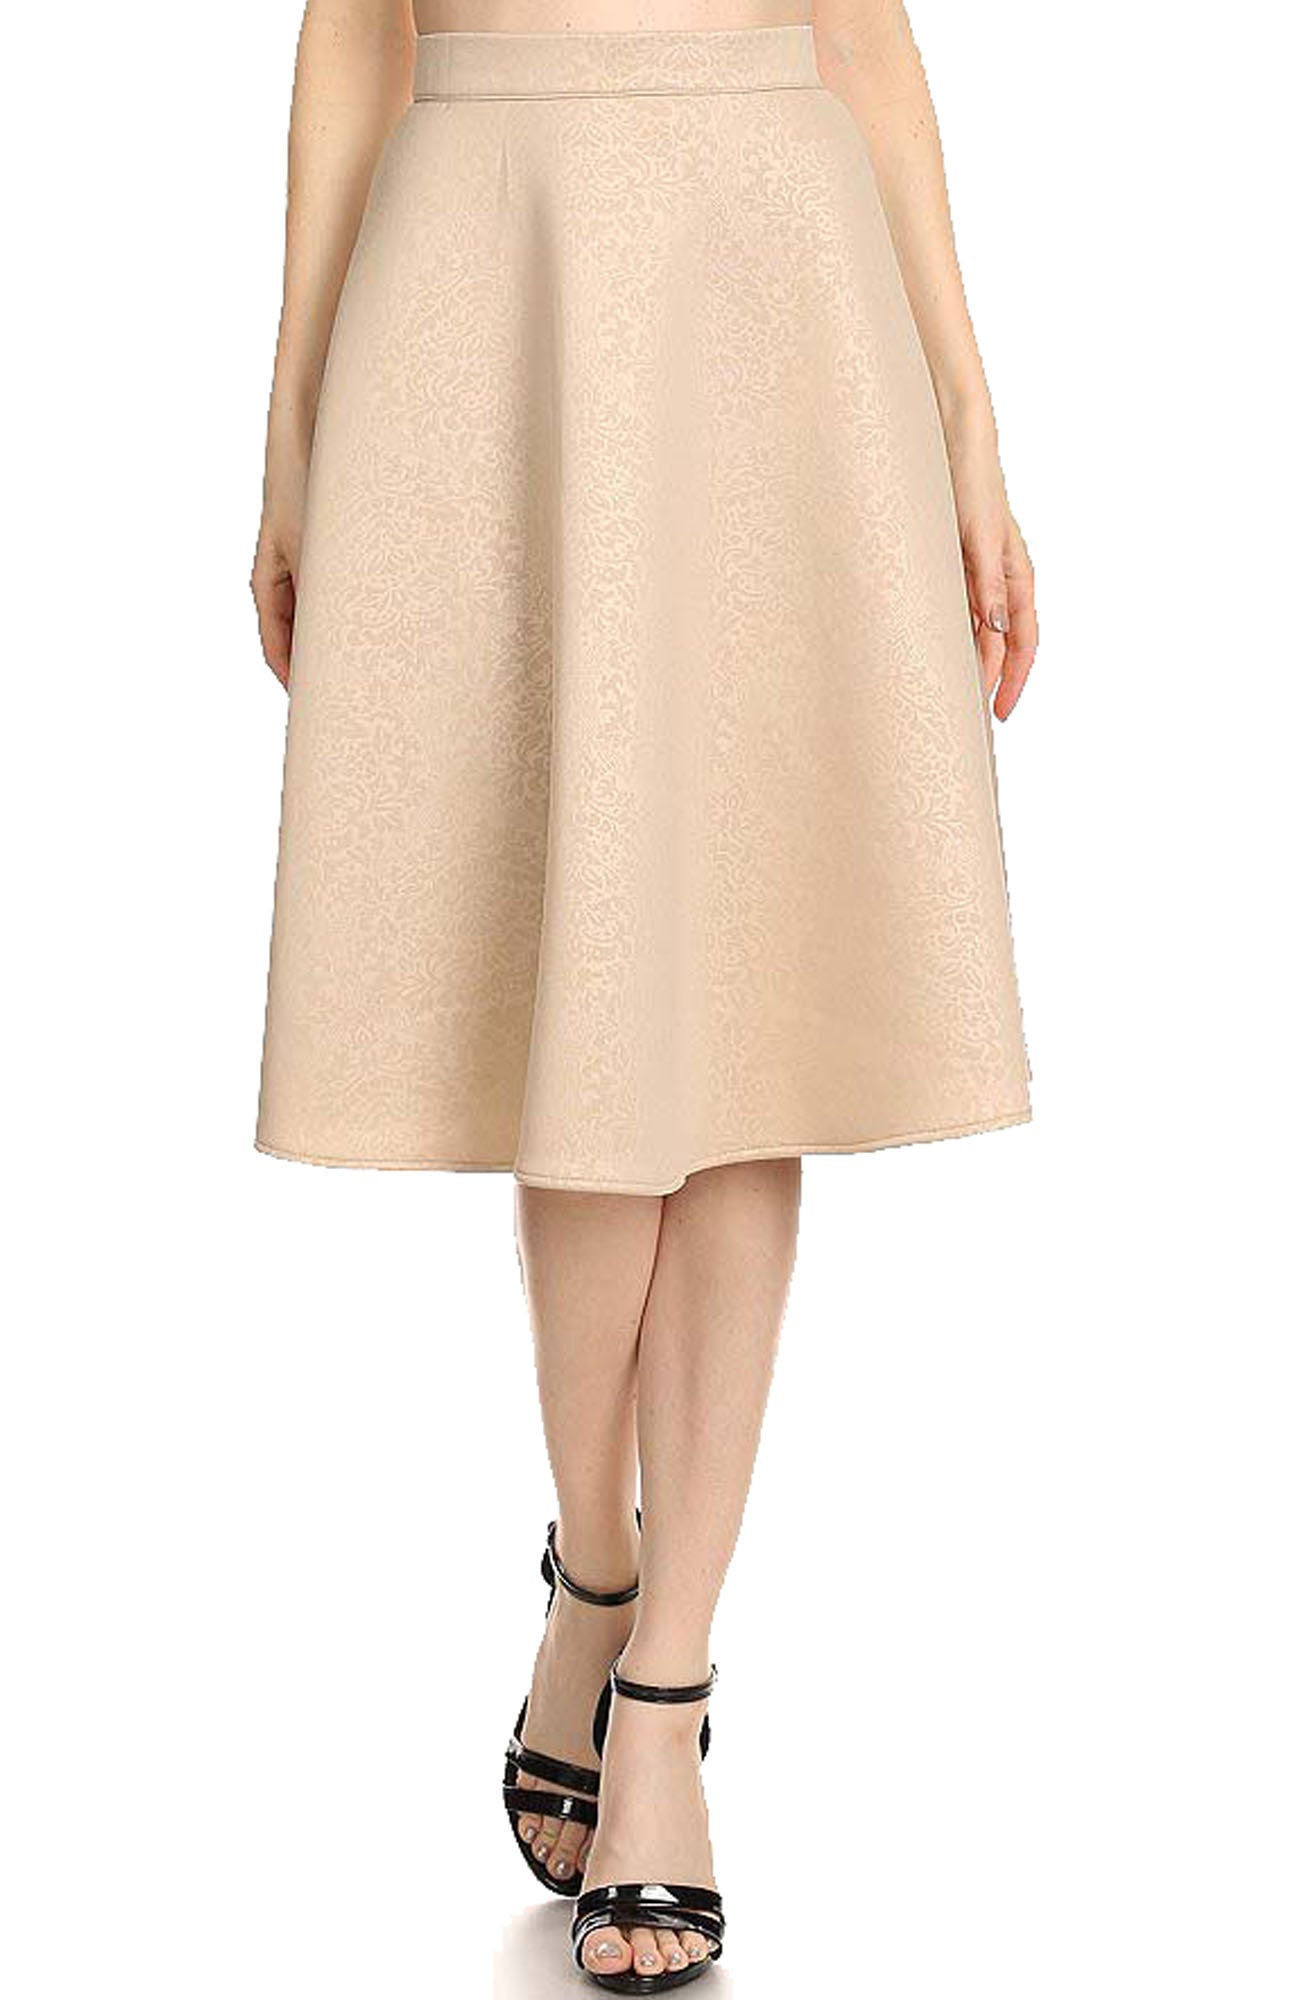 Avital Womens Damask Textured A-Line High Waisted Midi Skirt | Beige